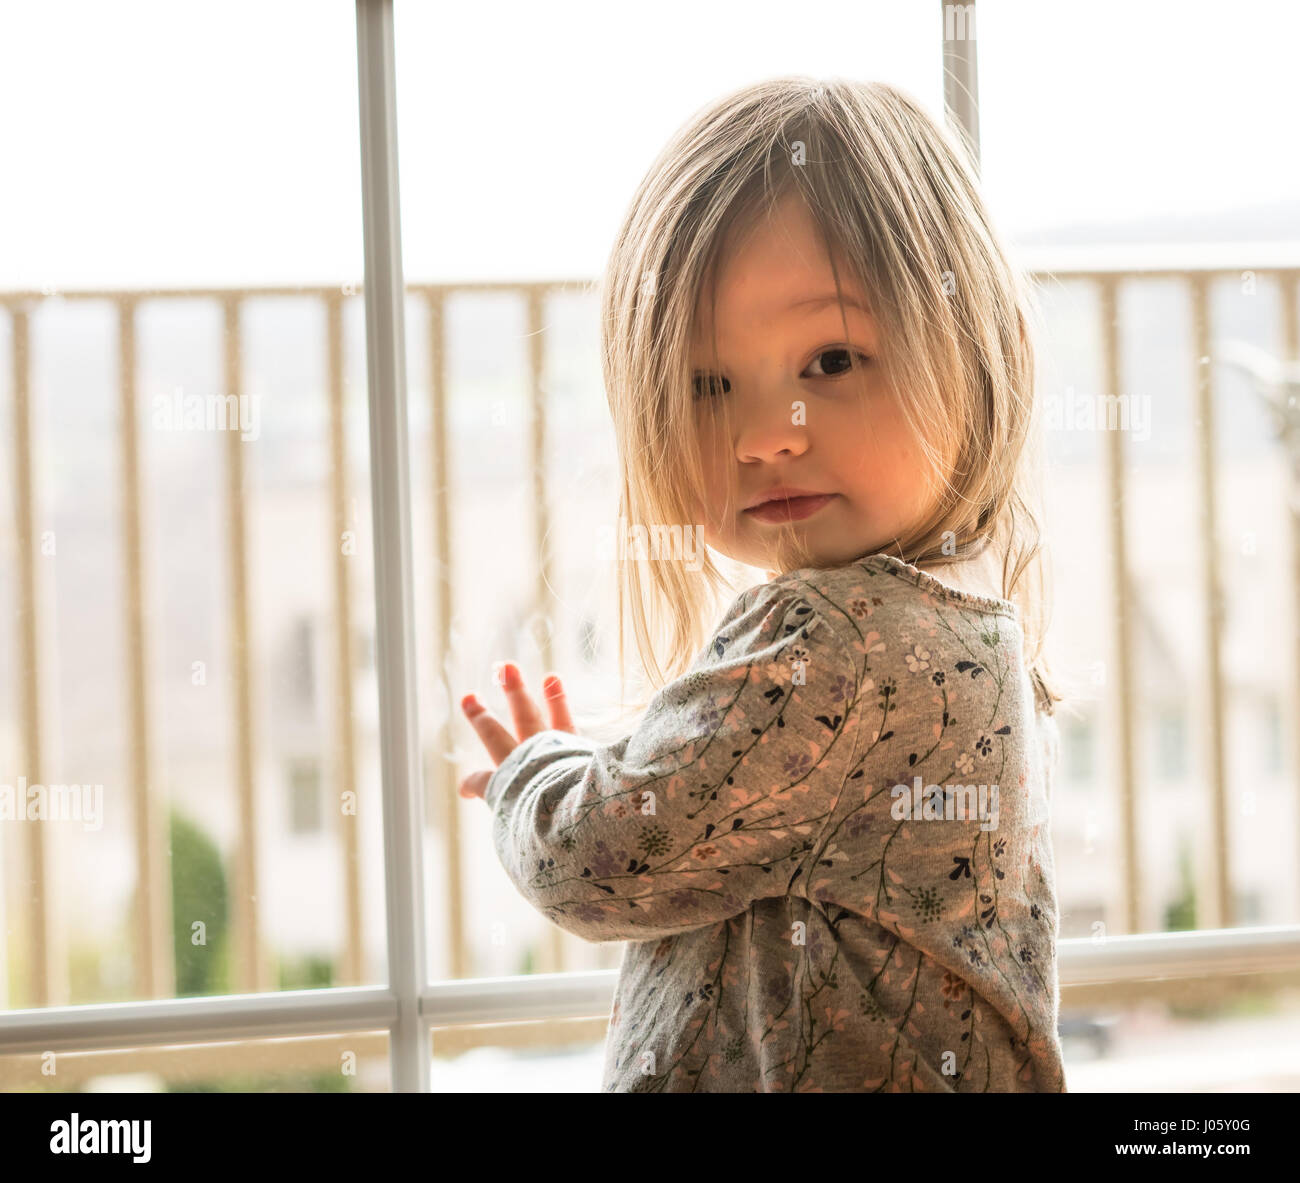 Young caucasian baby girl with adoring look - Stock Image